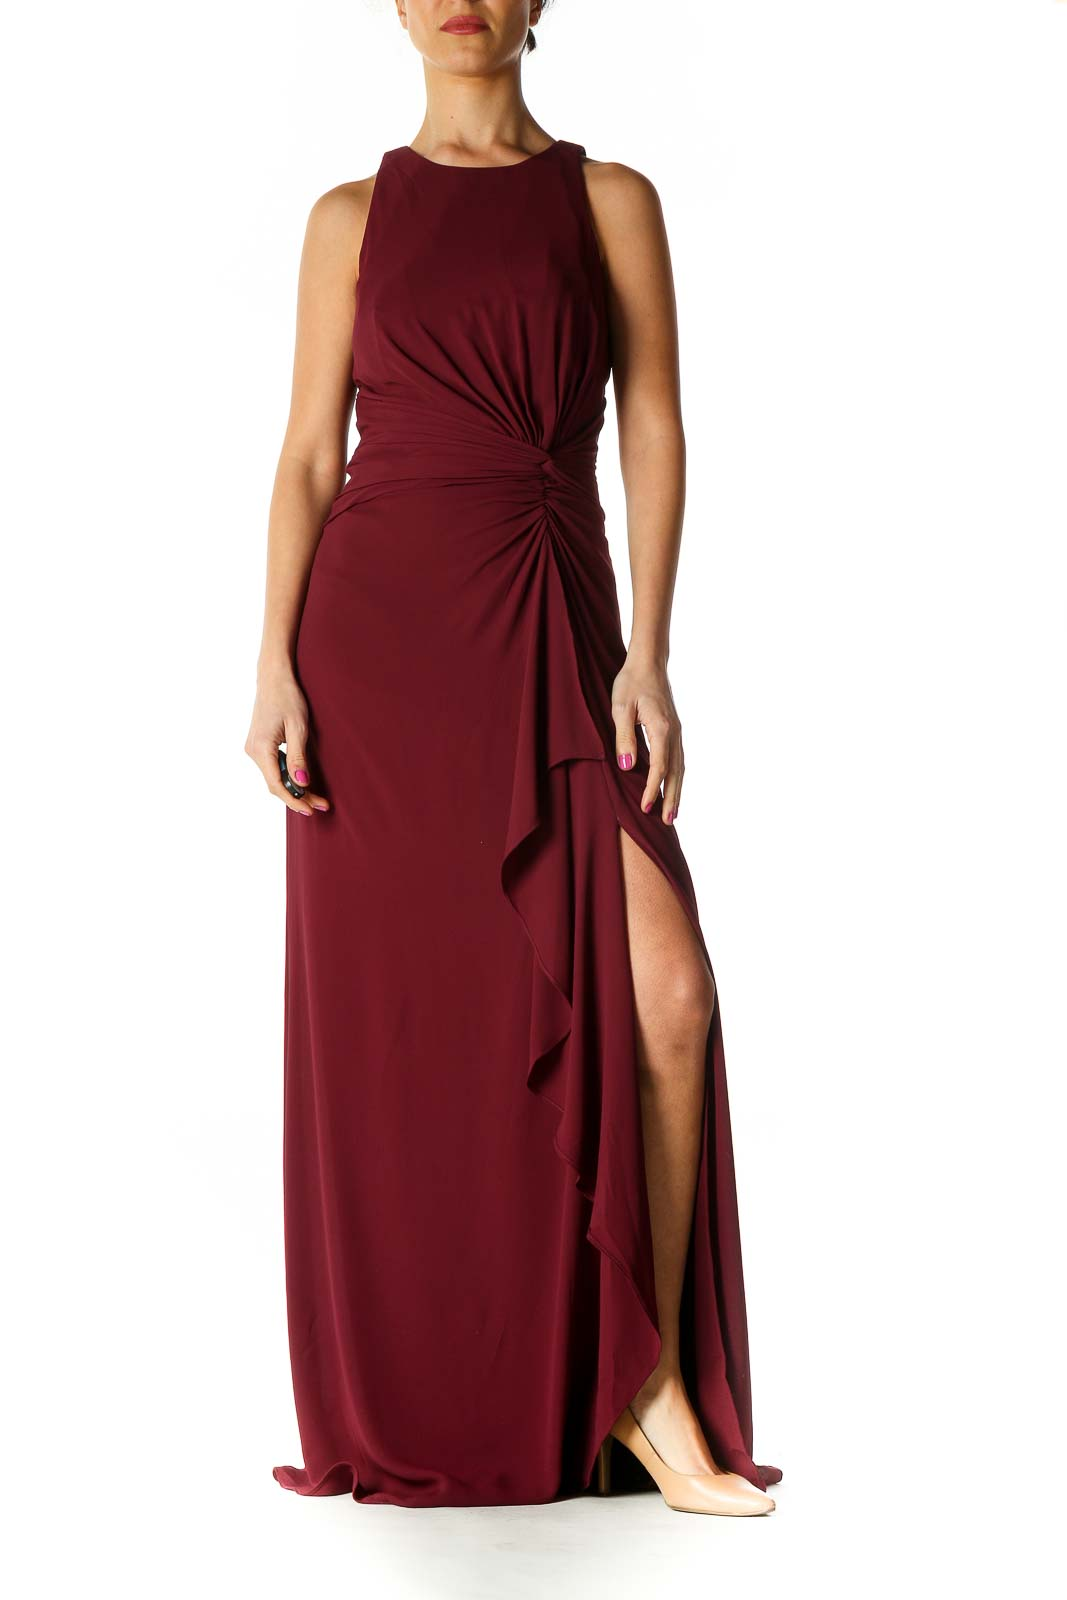 Red Solid Column Dress Front